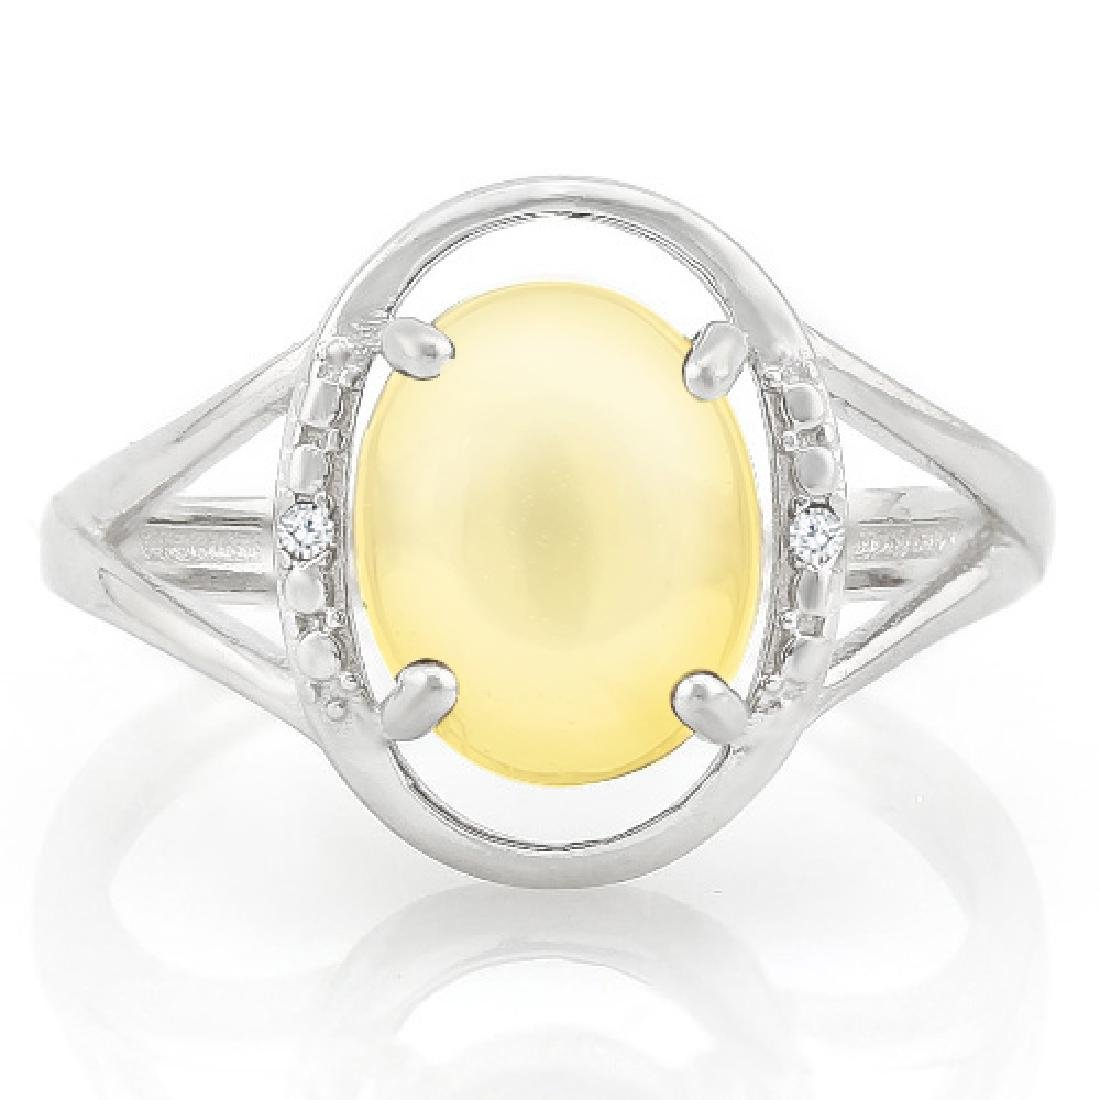 3 1/2 CARAT CABACHON CITRINE & DIAMOND 925 STERLING SIL